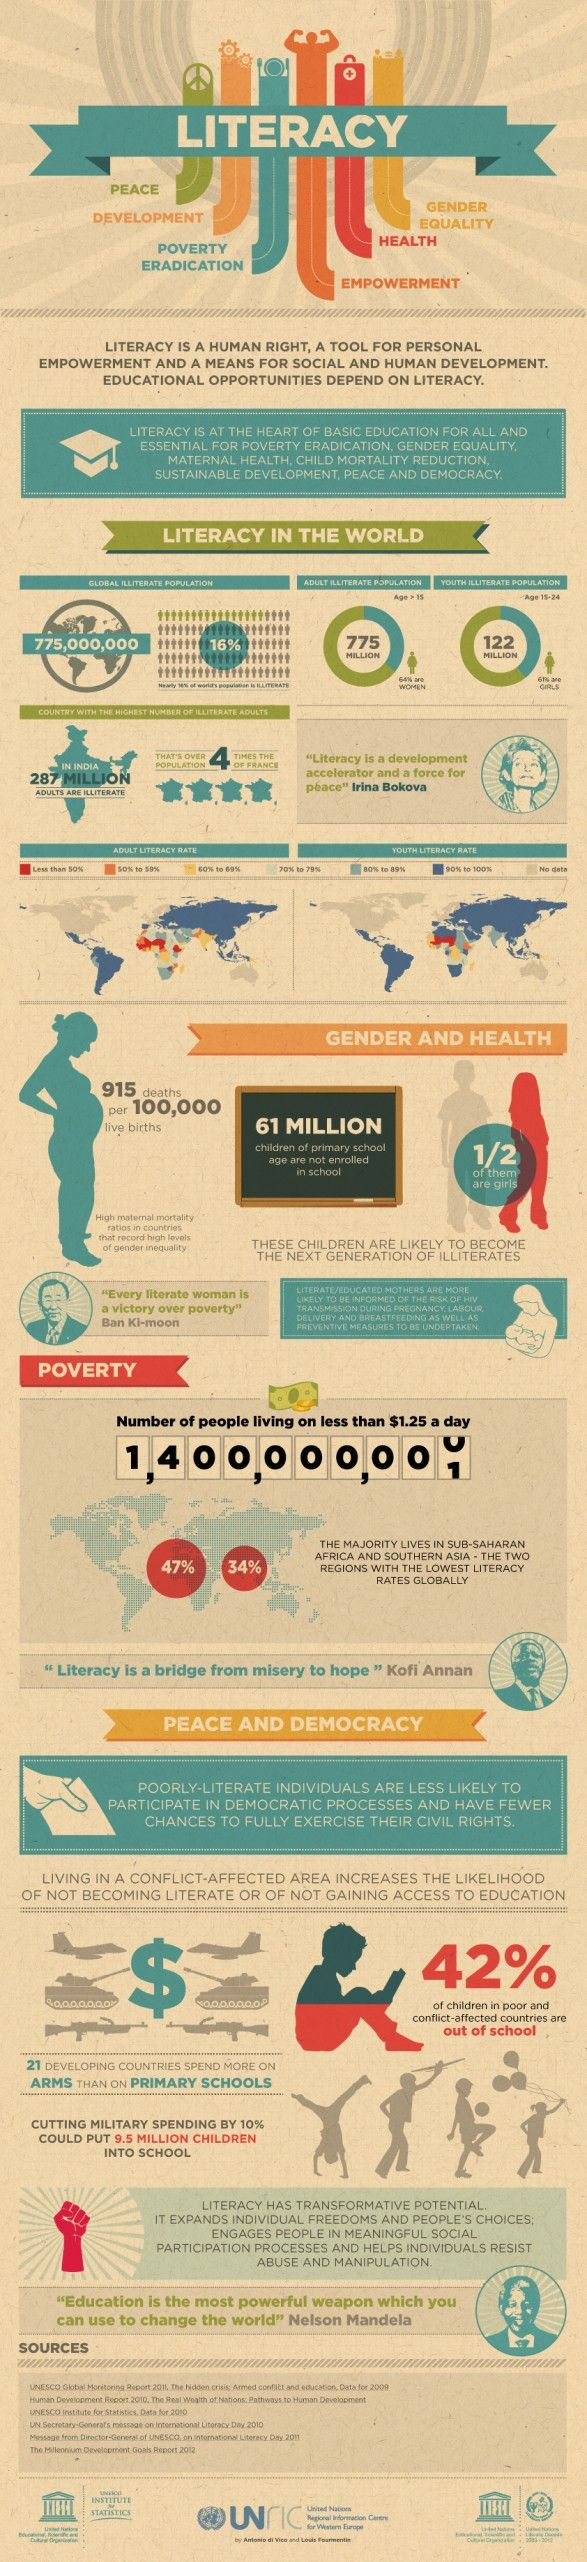 Literacy in the World